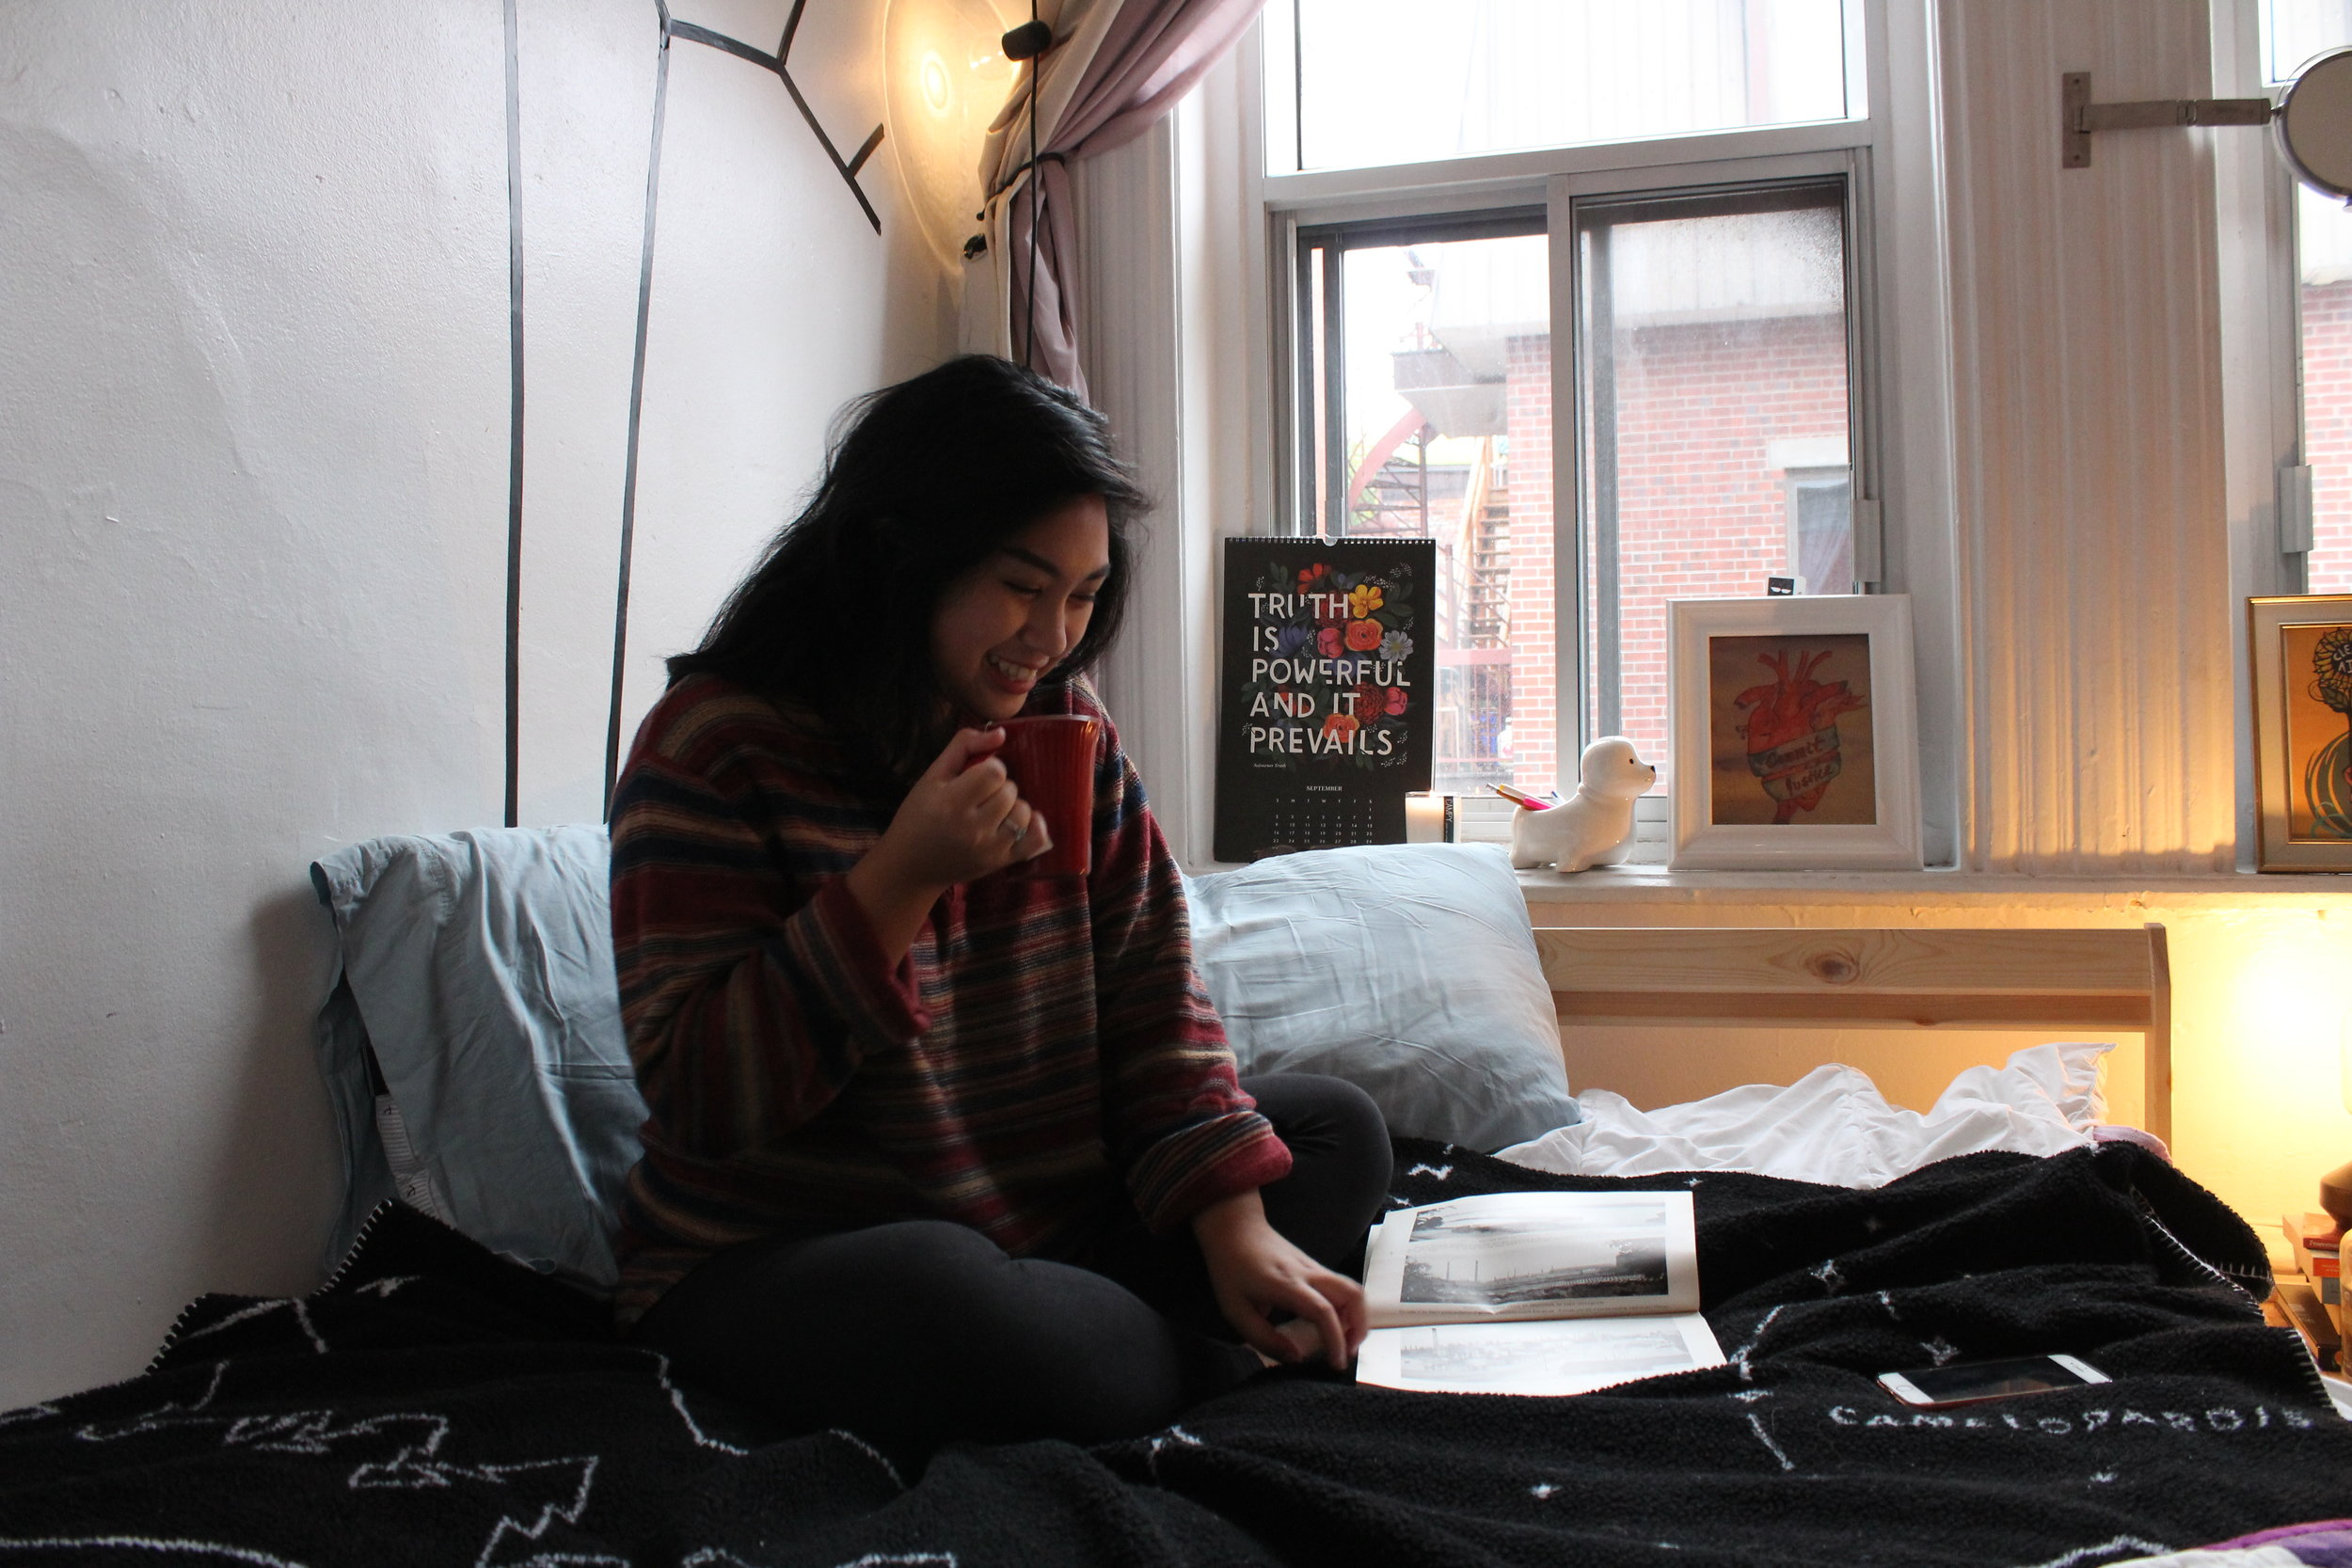 girl reading book on bed drinking tea